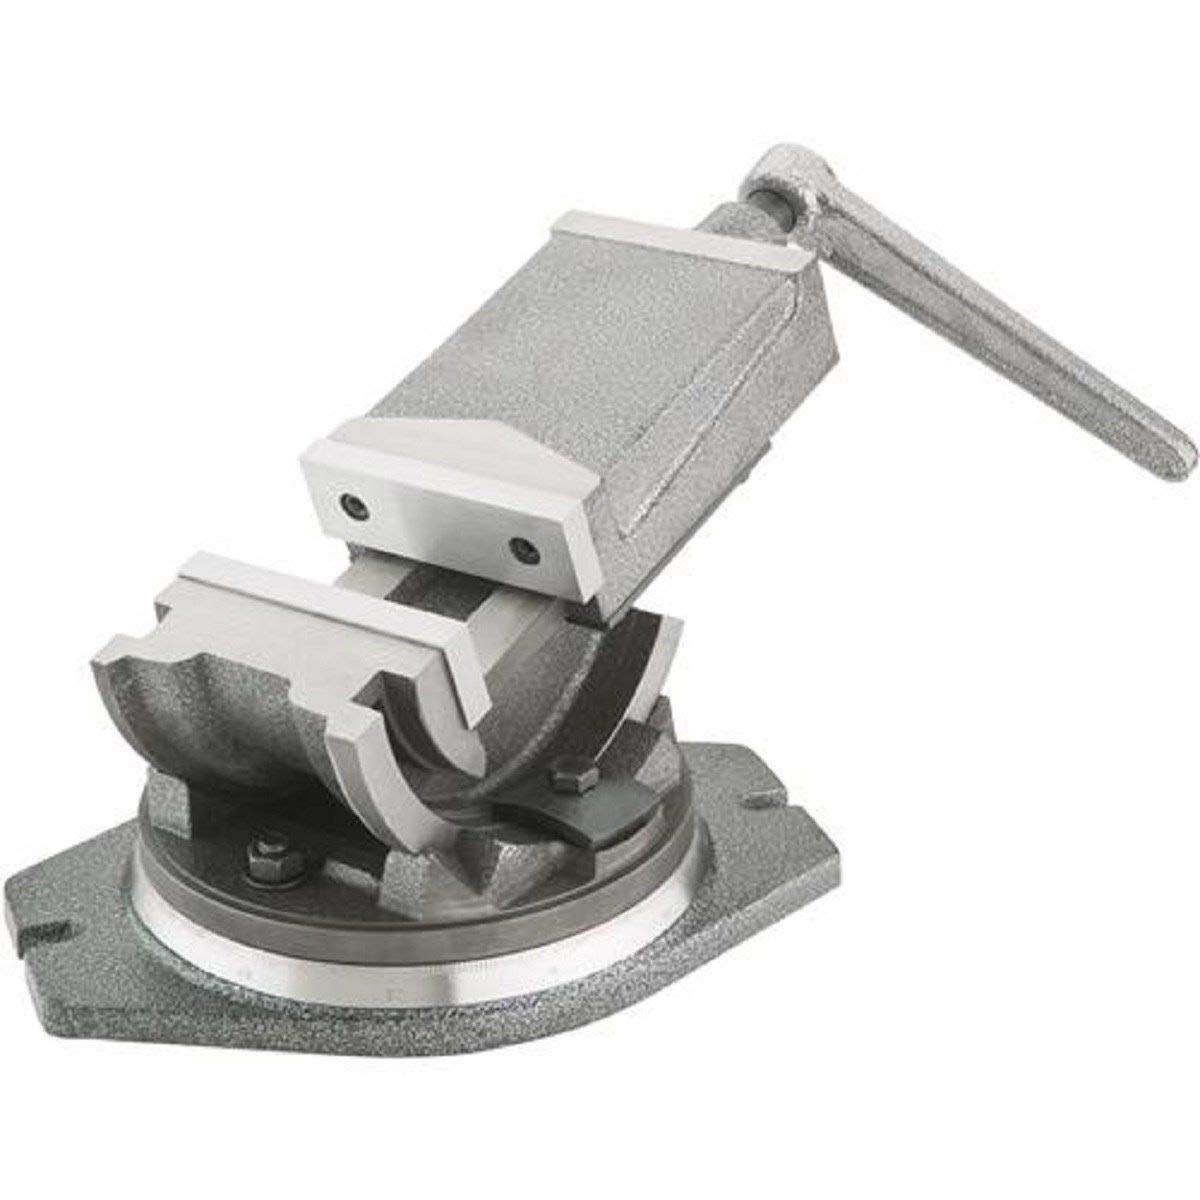 KCHEX>TILTING AND SWIVELING ANGLE MACHINIST VISE FOR DRILL PRESS MILLING MACHINE TOOL>5'' Tilting and swiveling milling vise offers the ultimate in work set-up. Precision aligned jaws and easily